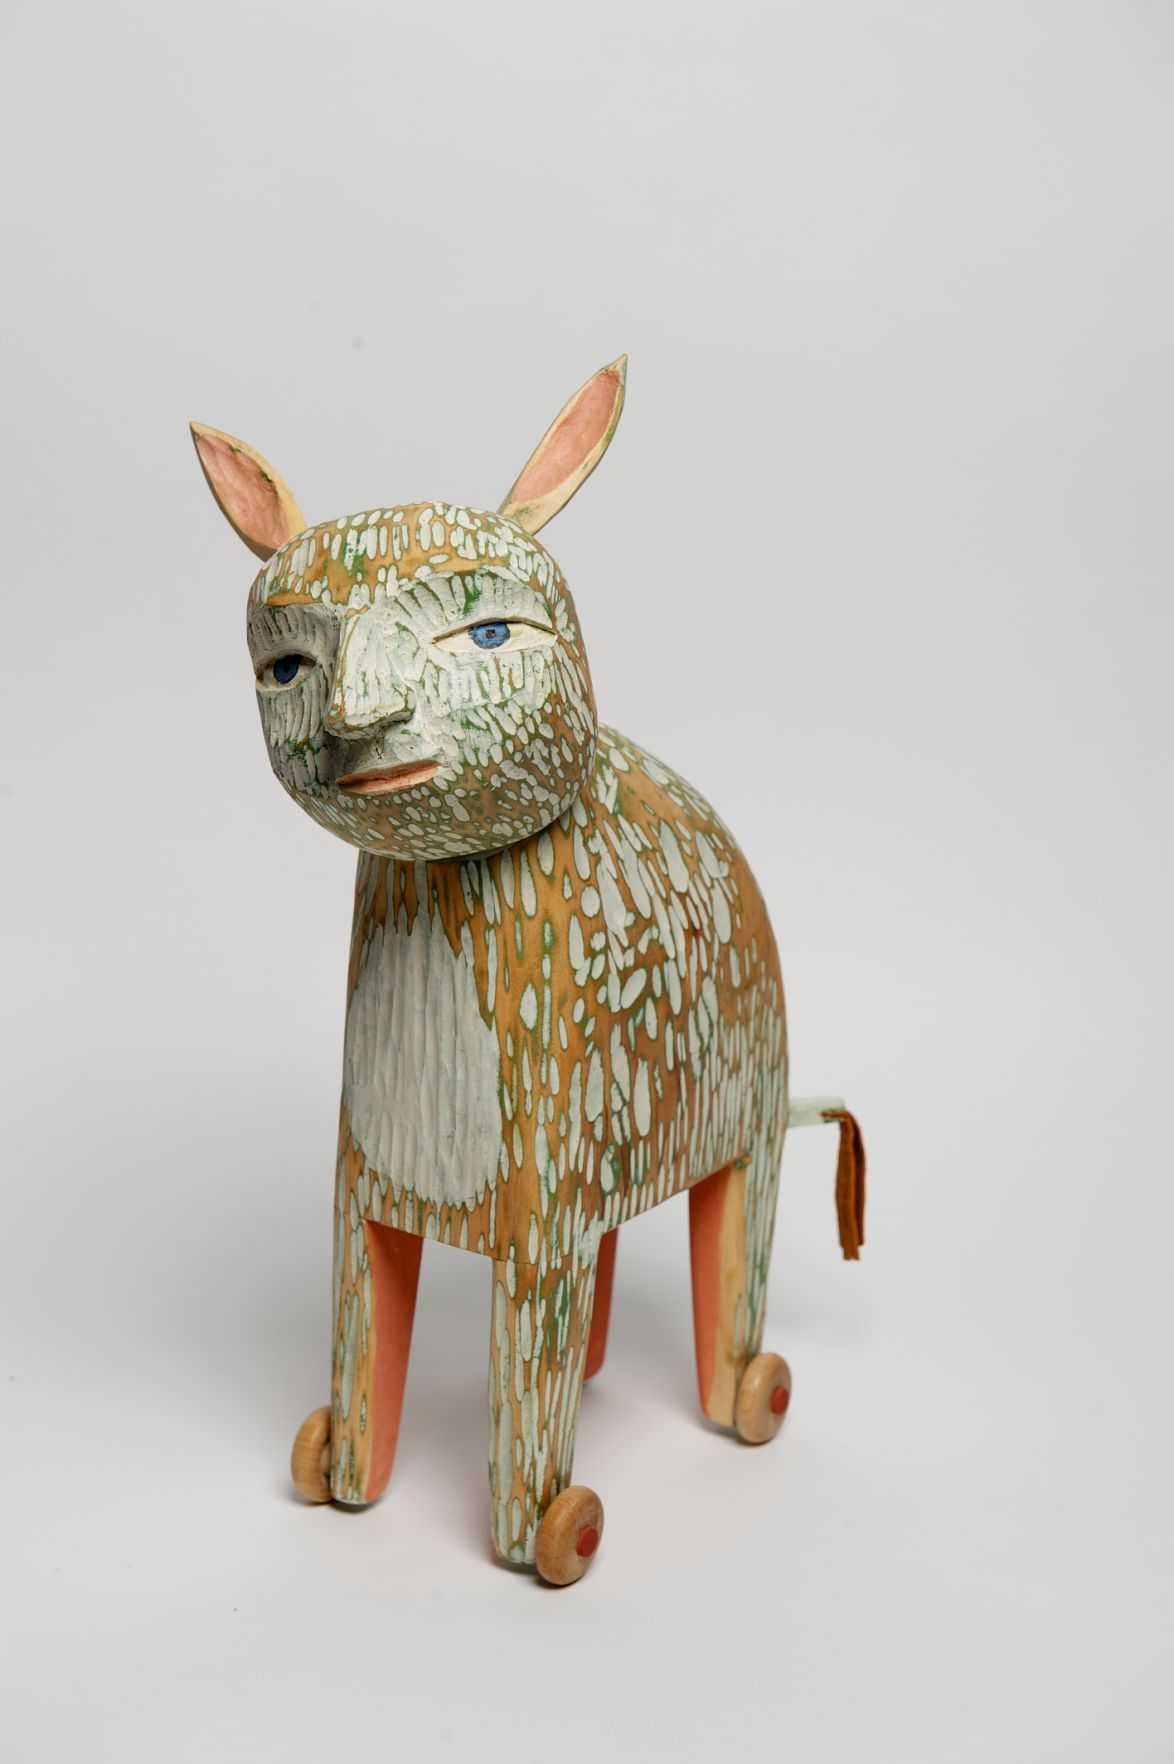 Wood sculpture by Amy Arnold and Kelsey Sauber Olds